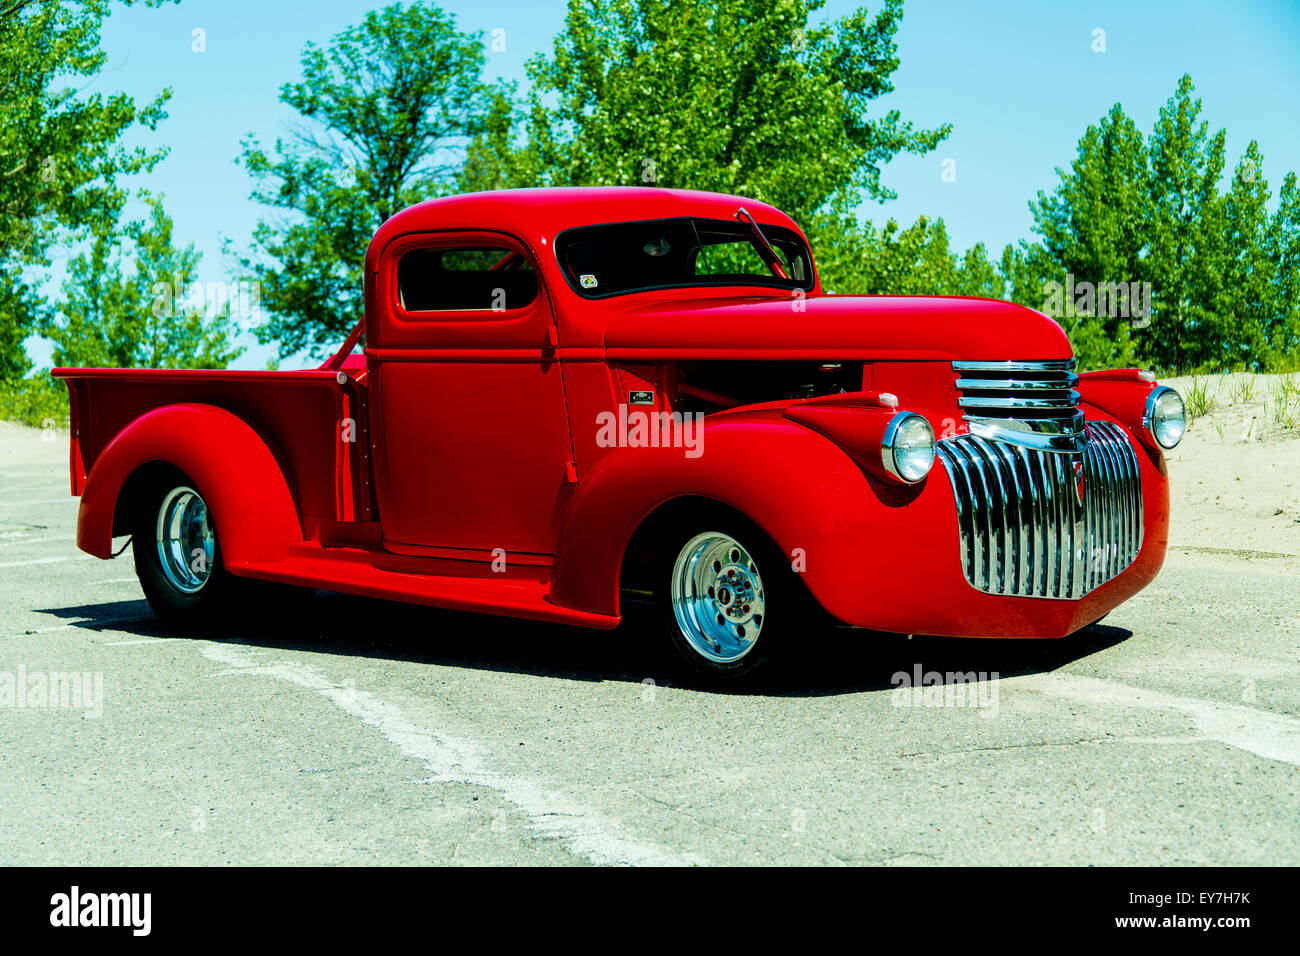 Custom Pickup Truck Stock Photos Images 1941 Mercury Pick Up Chevrolet On Pavement Image